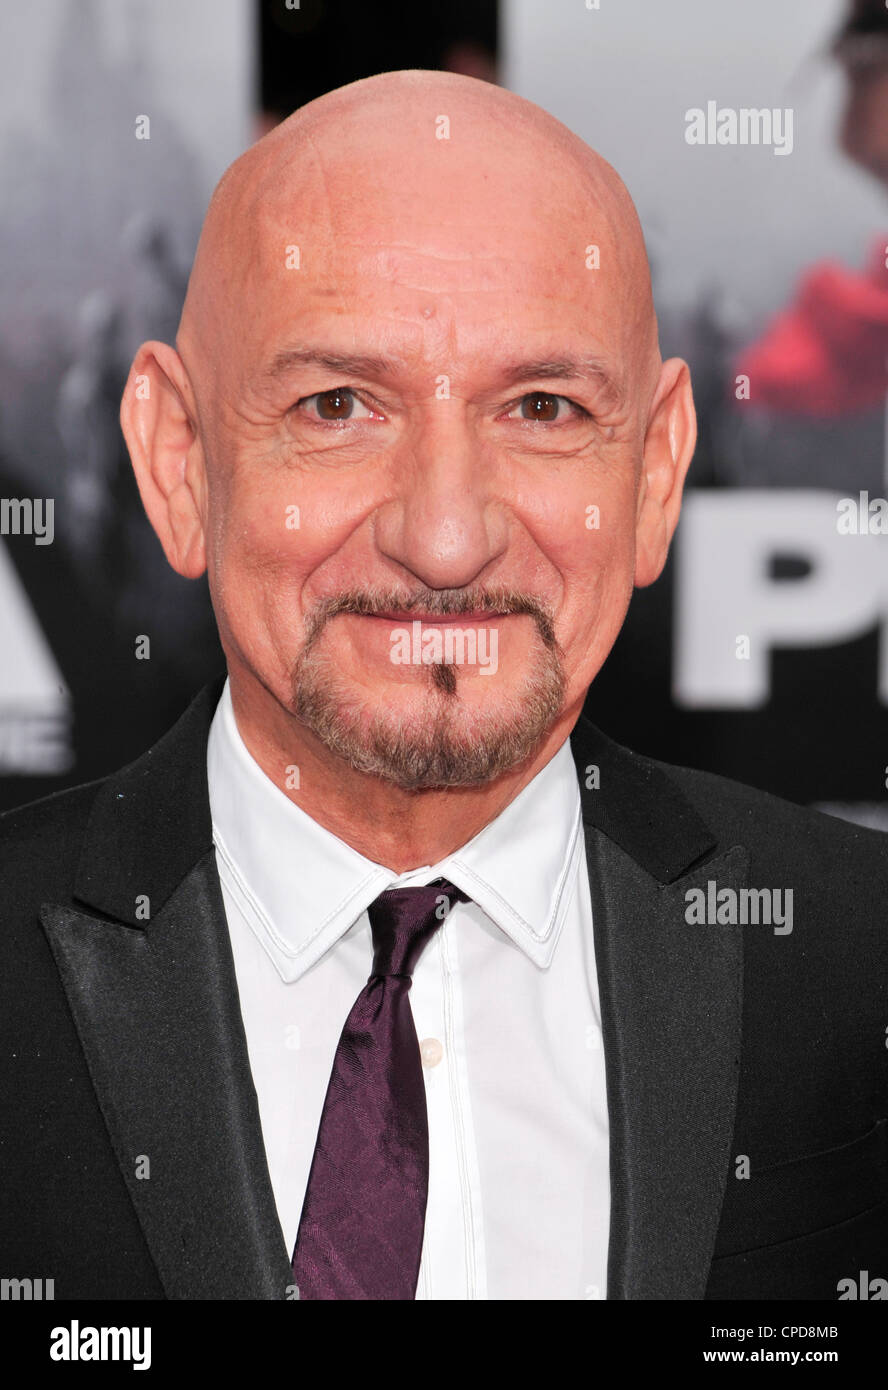 Sir Ben Kingsley - Stock Image